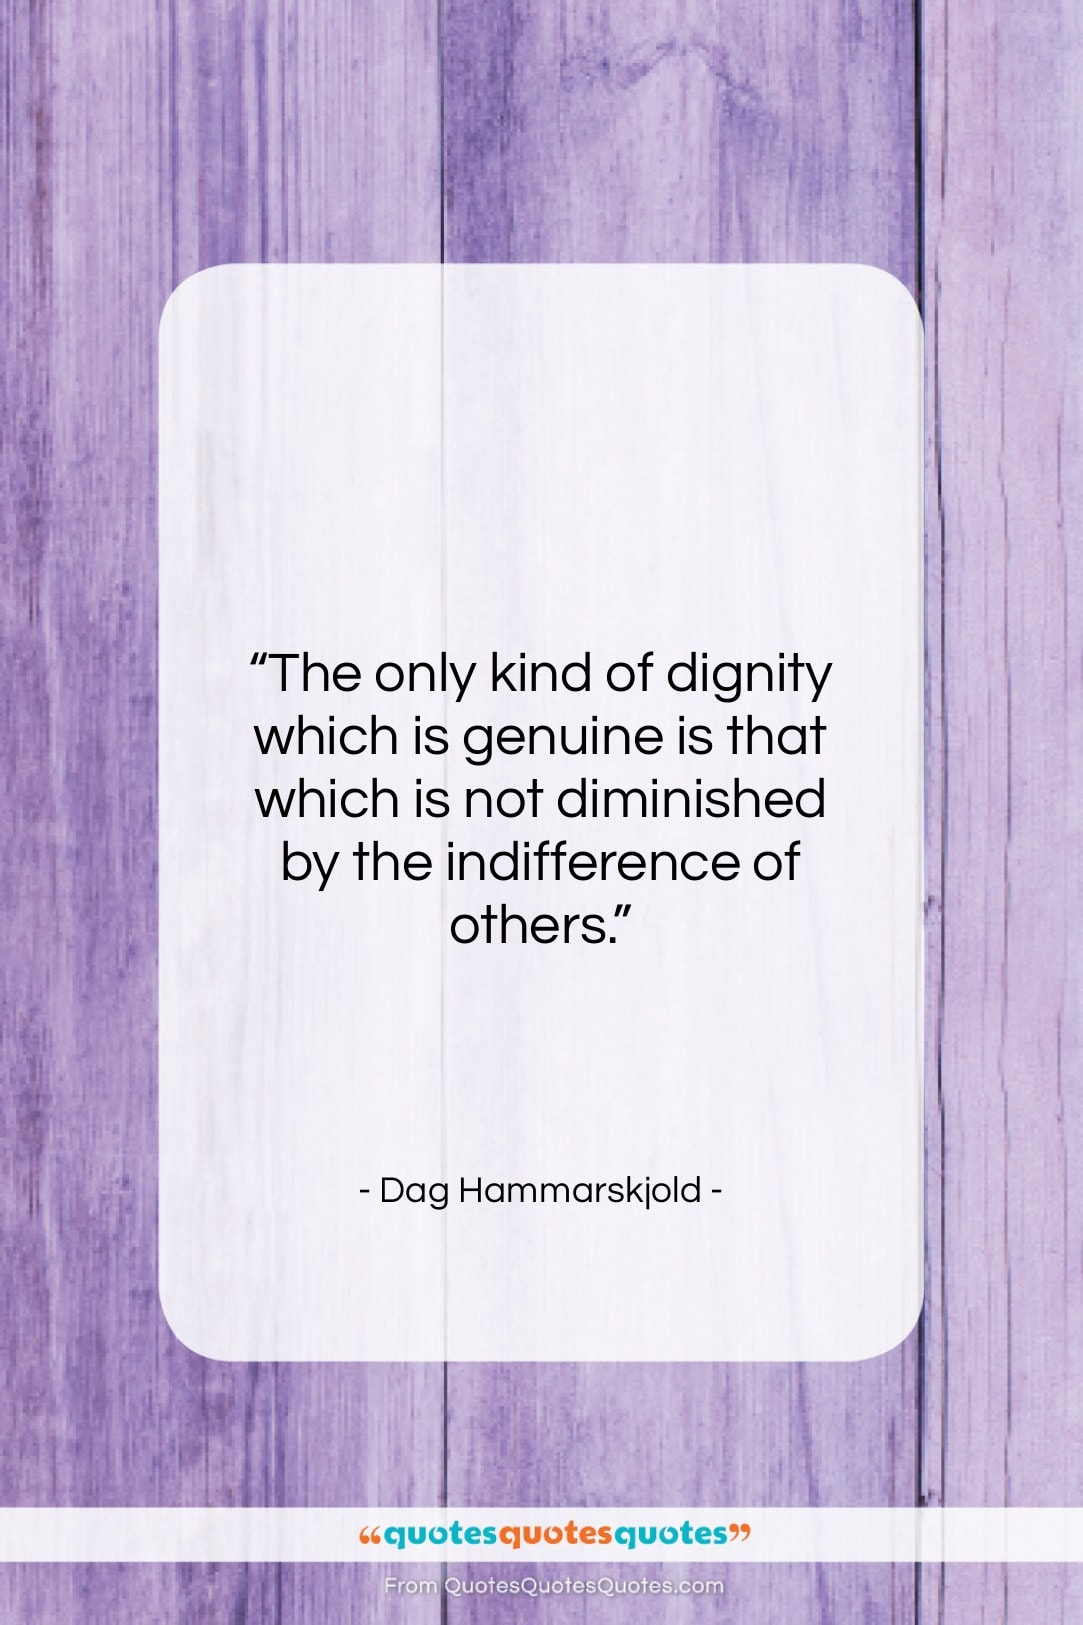 """Dag Hammarskjold quote: """"The only kind of dignity which is…""""- at QuotesQuotesQuotes.com"""